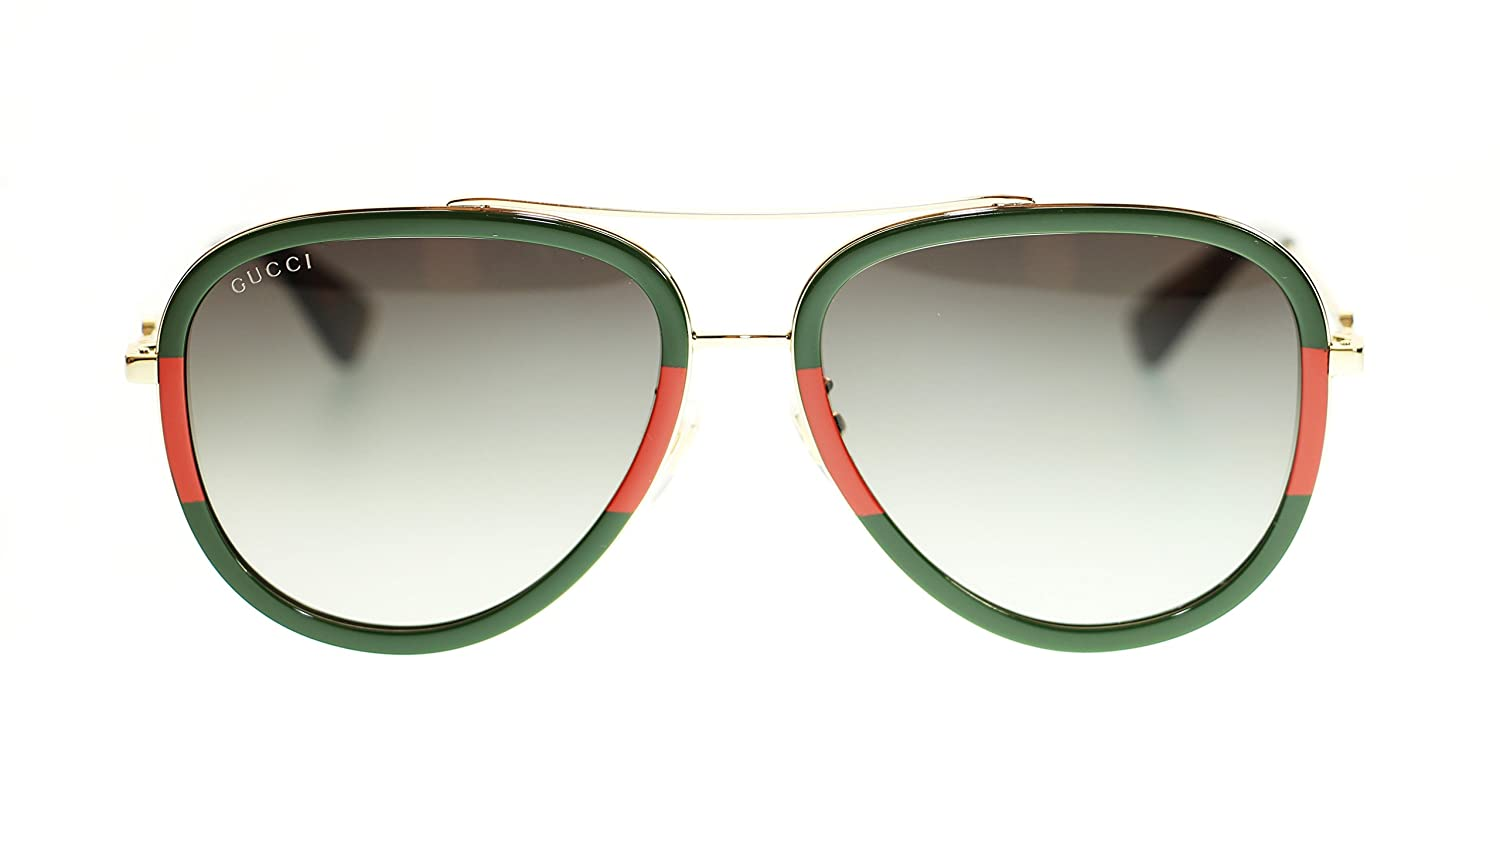 7ffd126461 Gucci Women Aviator Sunglasses GG0062S 003 Gold Green Gradient Lens 57mm  Authentic  Amazon.co.uk  Clothing